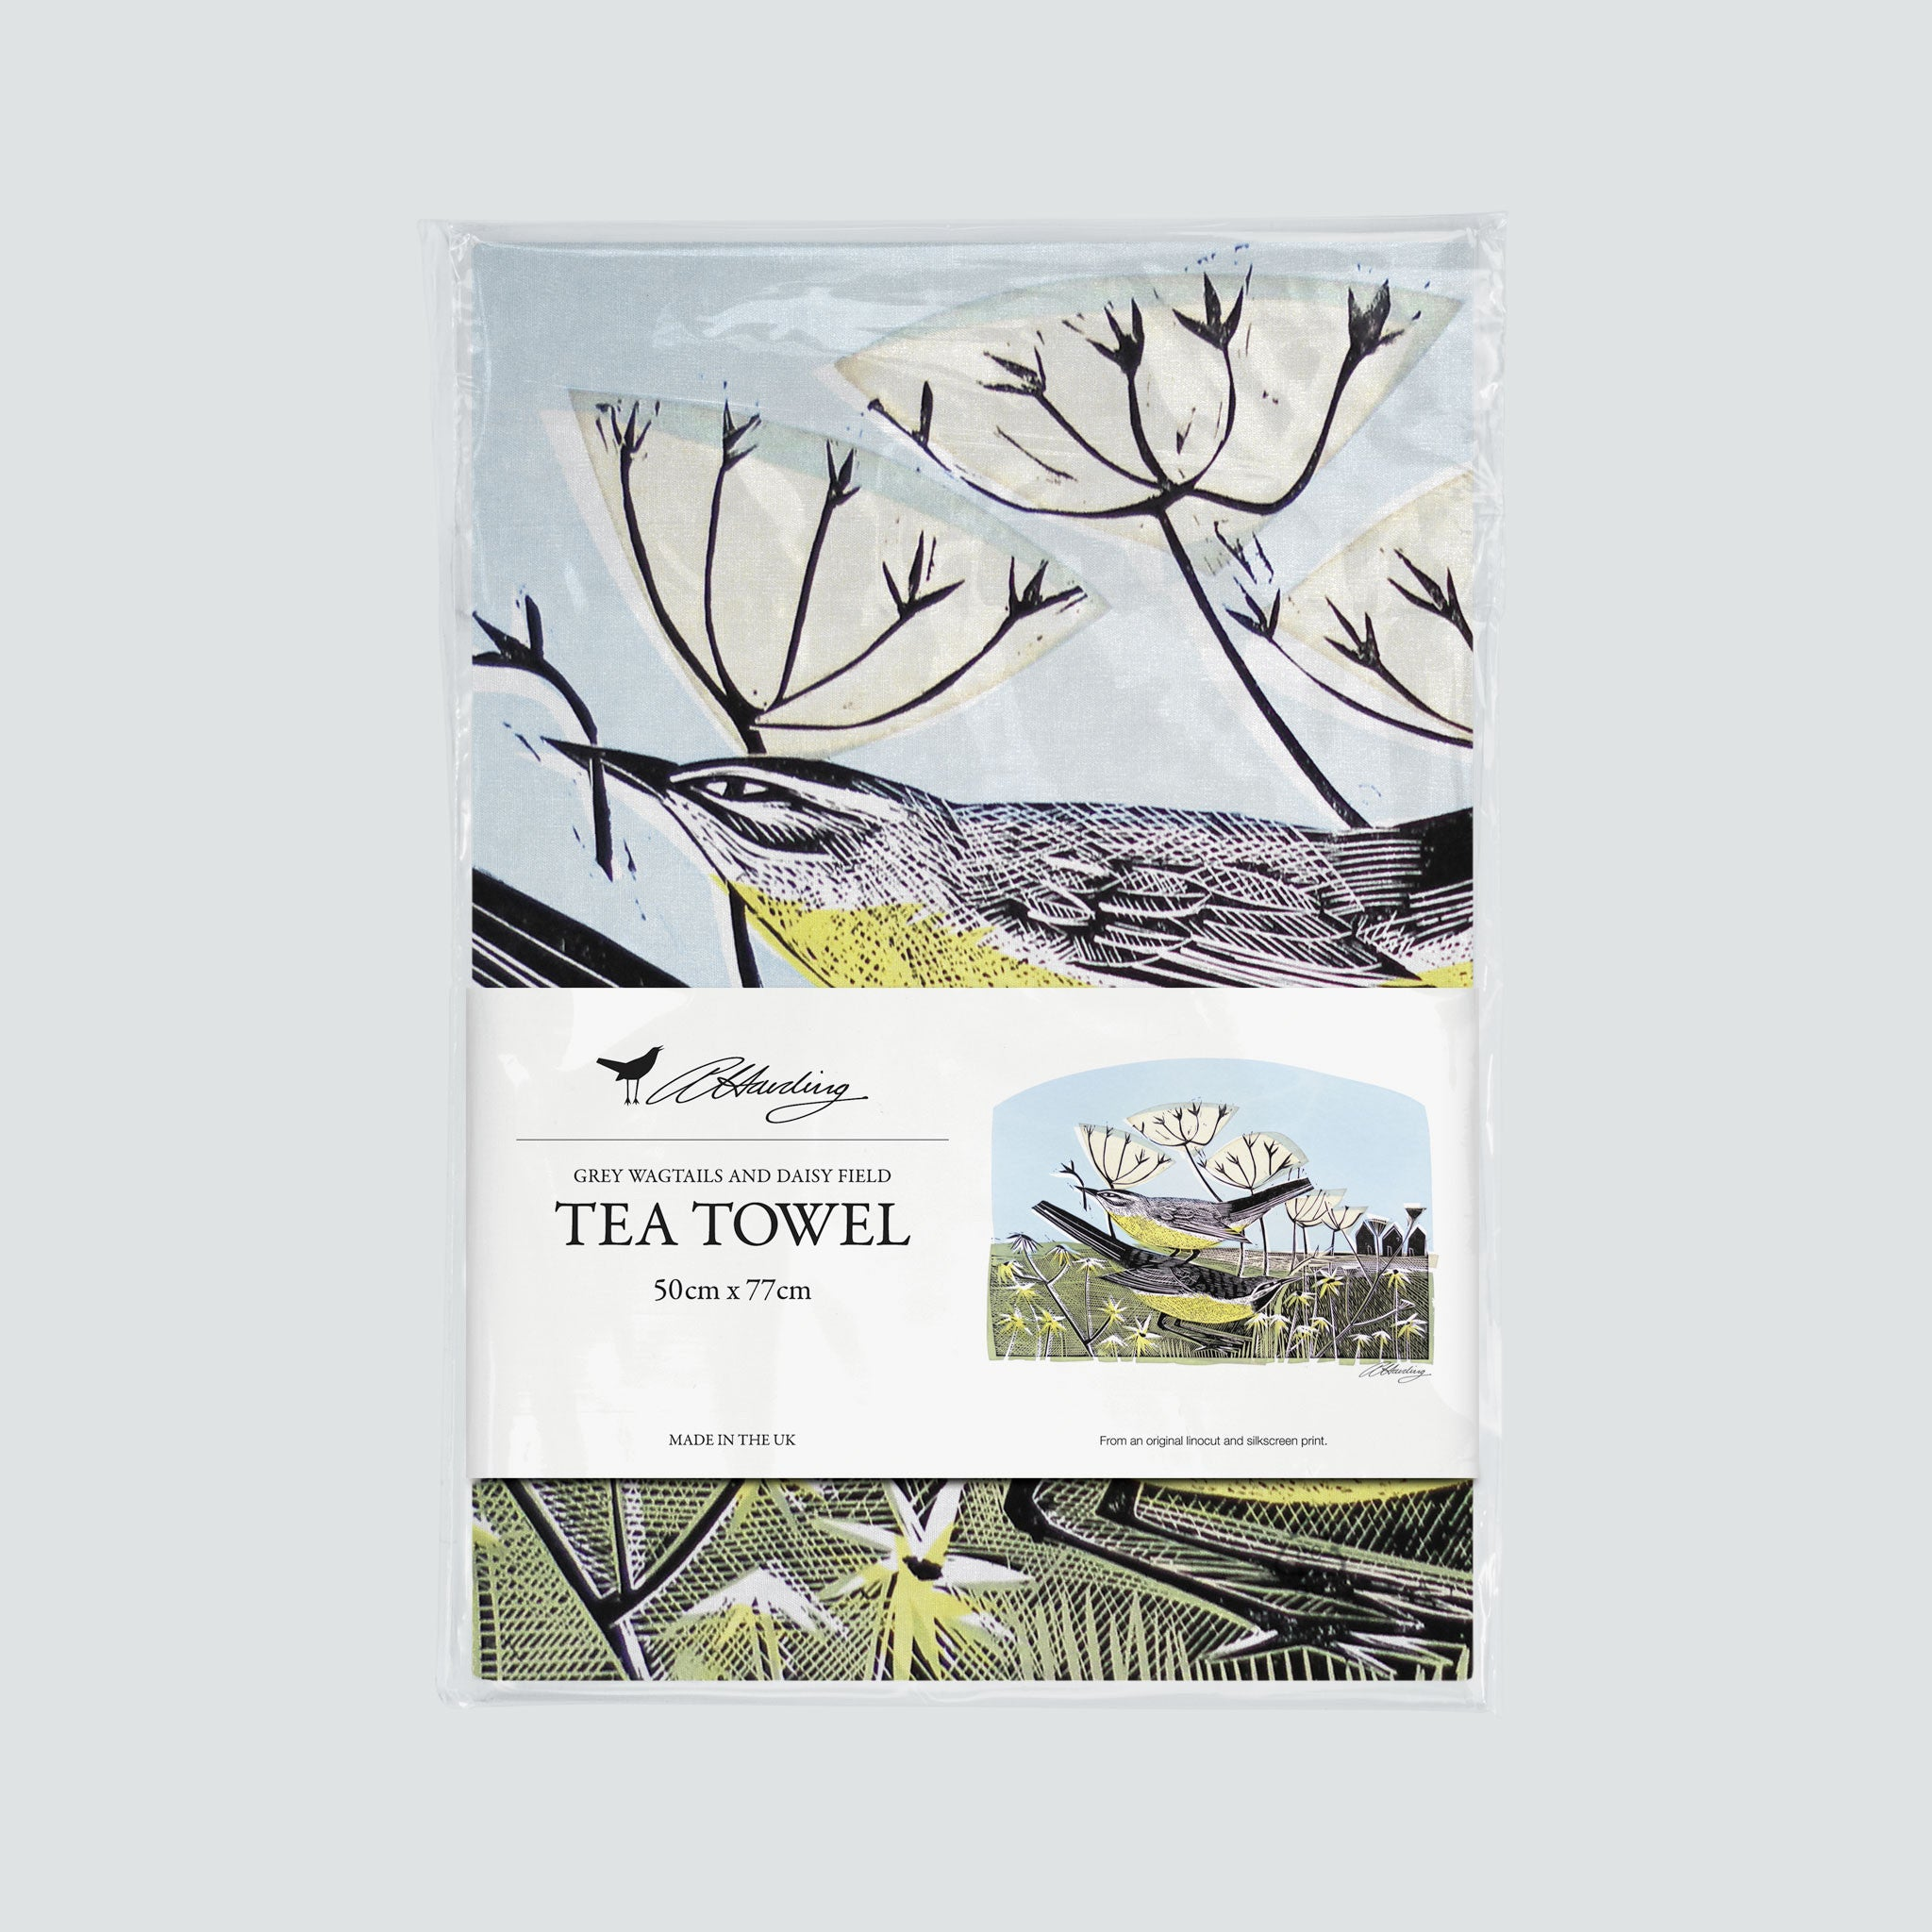 Wagtails and Daisy Field Tea Towel - Angela Harding